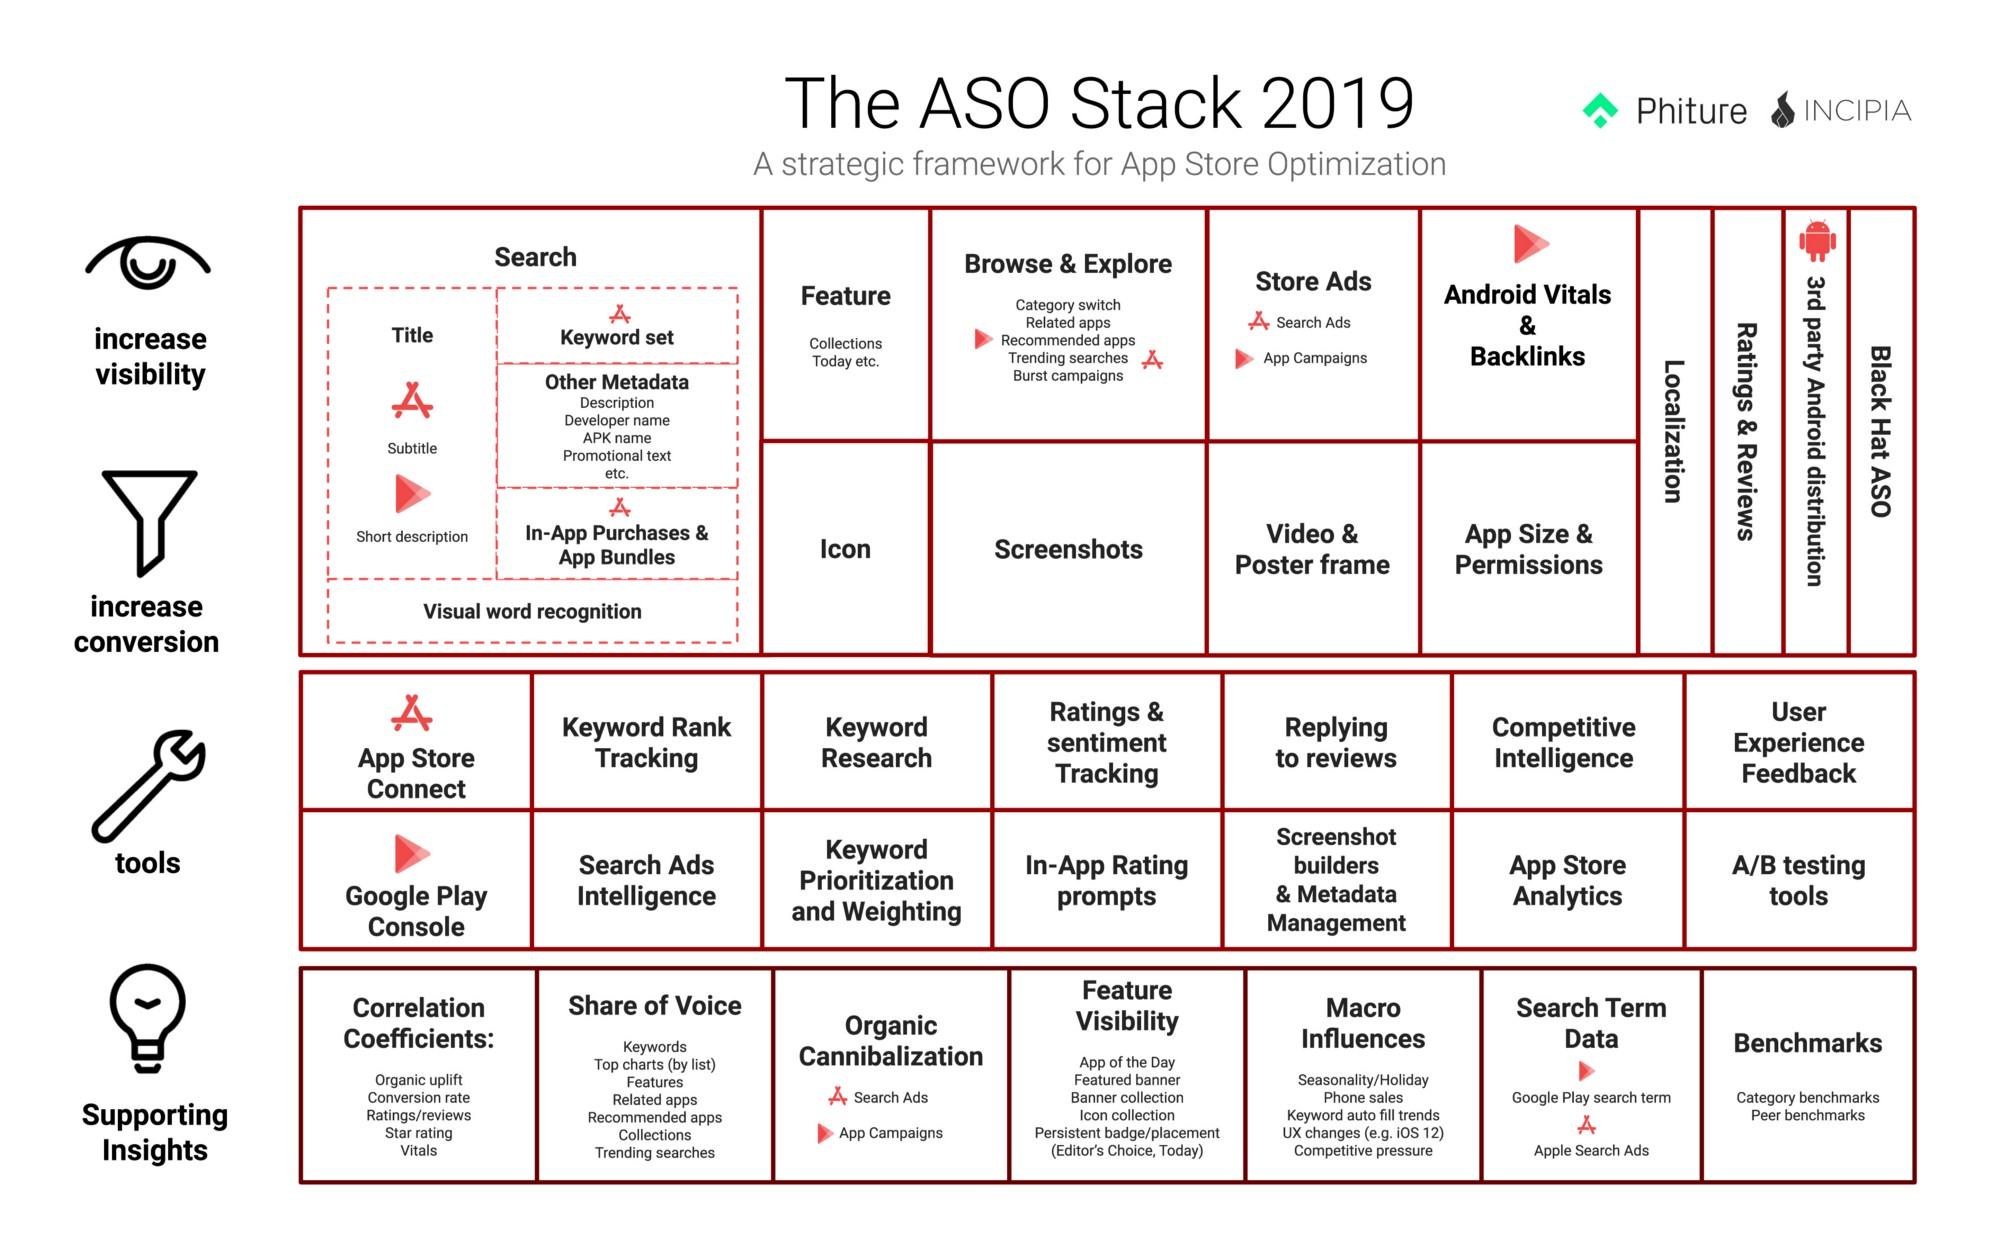 Introducing the ASO Stack 2019 - App Store Optimization Stack